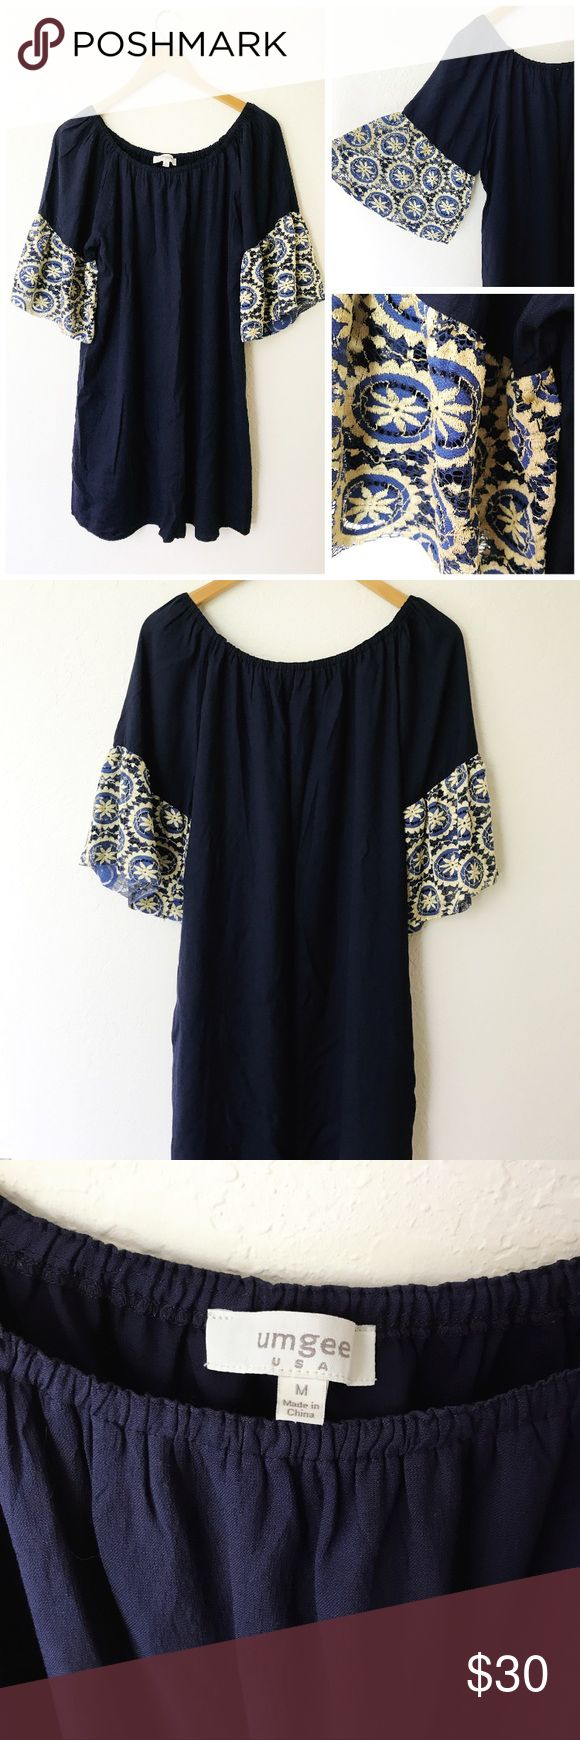 Umgee Navy Off Shoulder Lace Sleeves Shift Dress Excellent condition, beautiful Lace design at the hem of he sleeves, elastic top allows for an off the shoulder or open shoulder look. Loose, comfy and versatile. Wear it over a bathing suit or with some sandals and a cute tote for a day out. Umgee Dresses